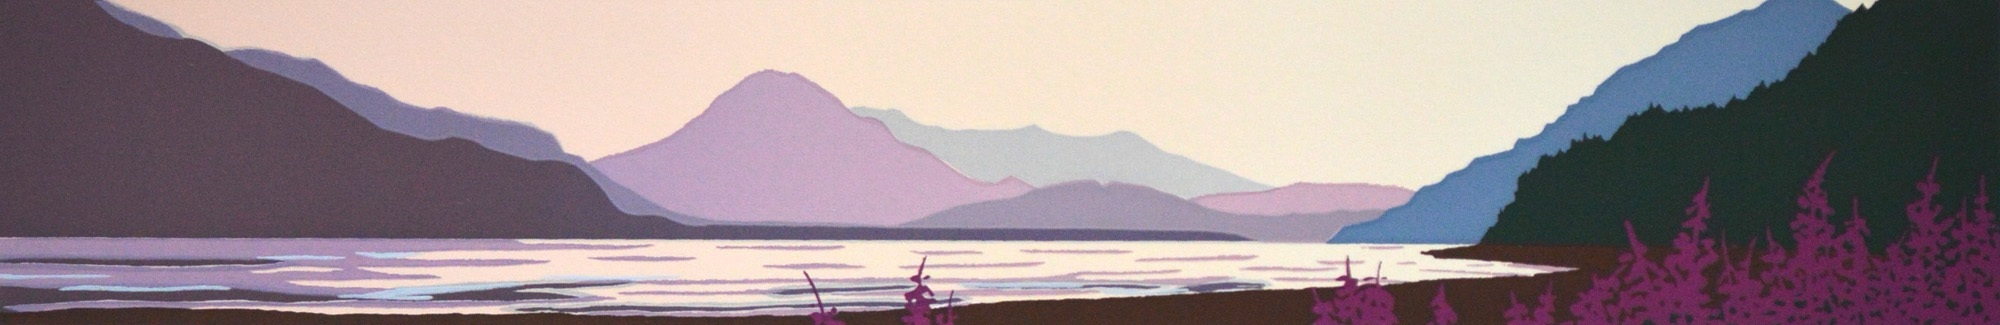 Donna Catotti Chilkat River Sunset, serigraph, image 2 x 12 inches